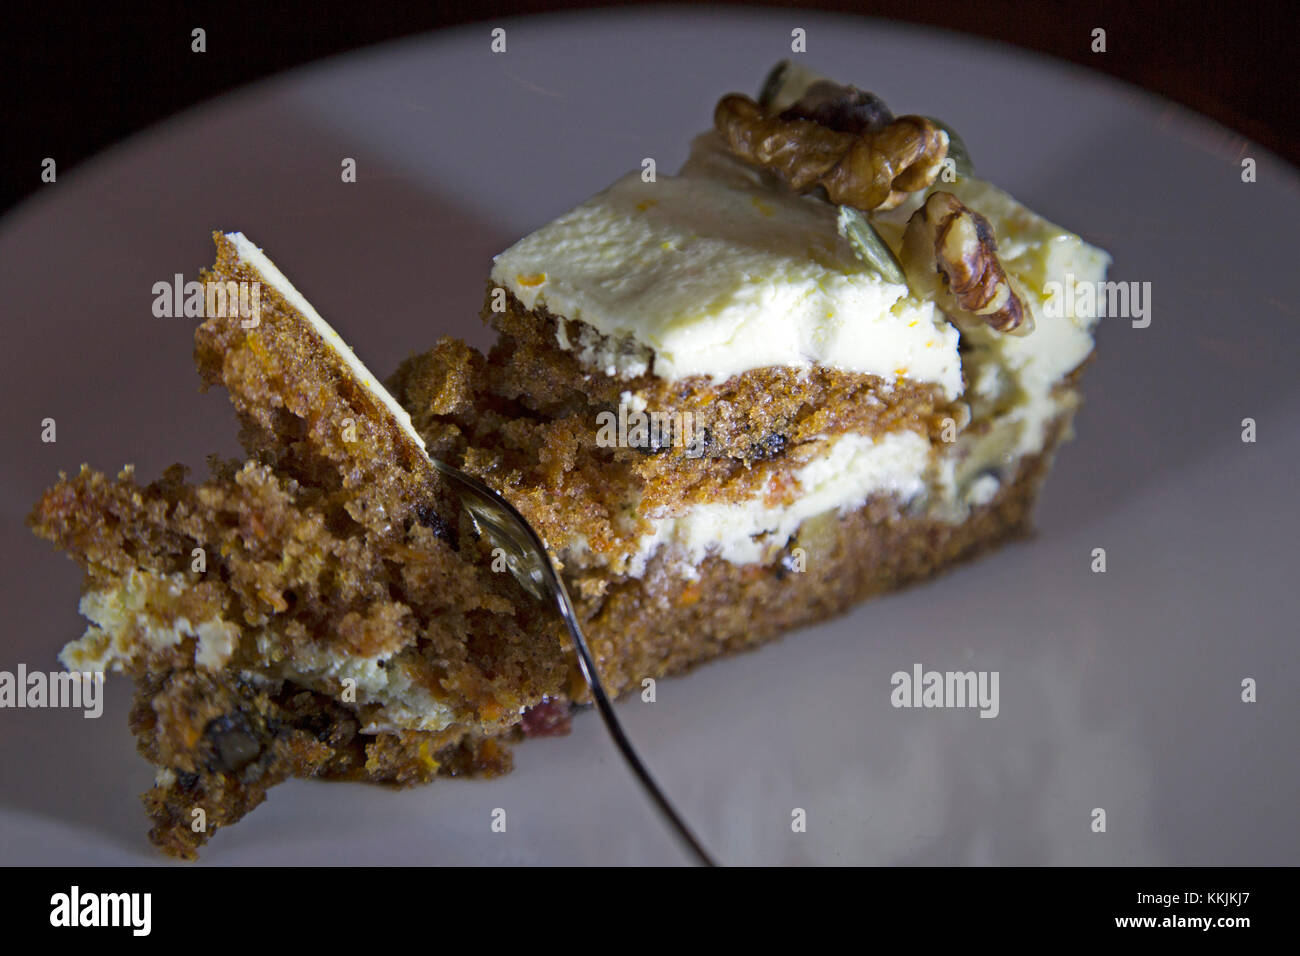 Carrot cake served on a white plate. The cake features fondant and walnuts. - Stock Image